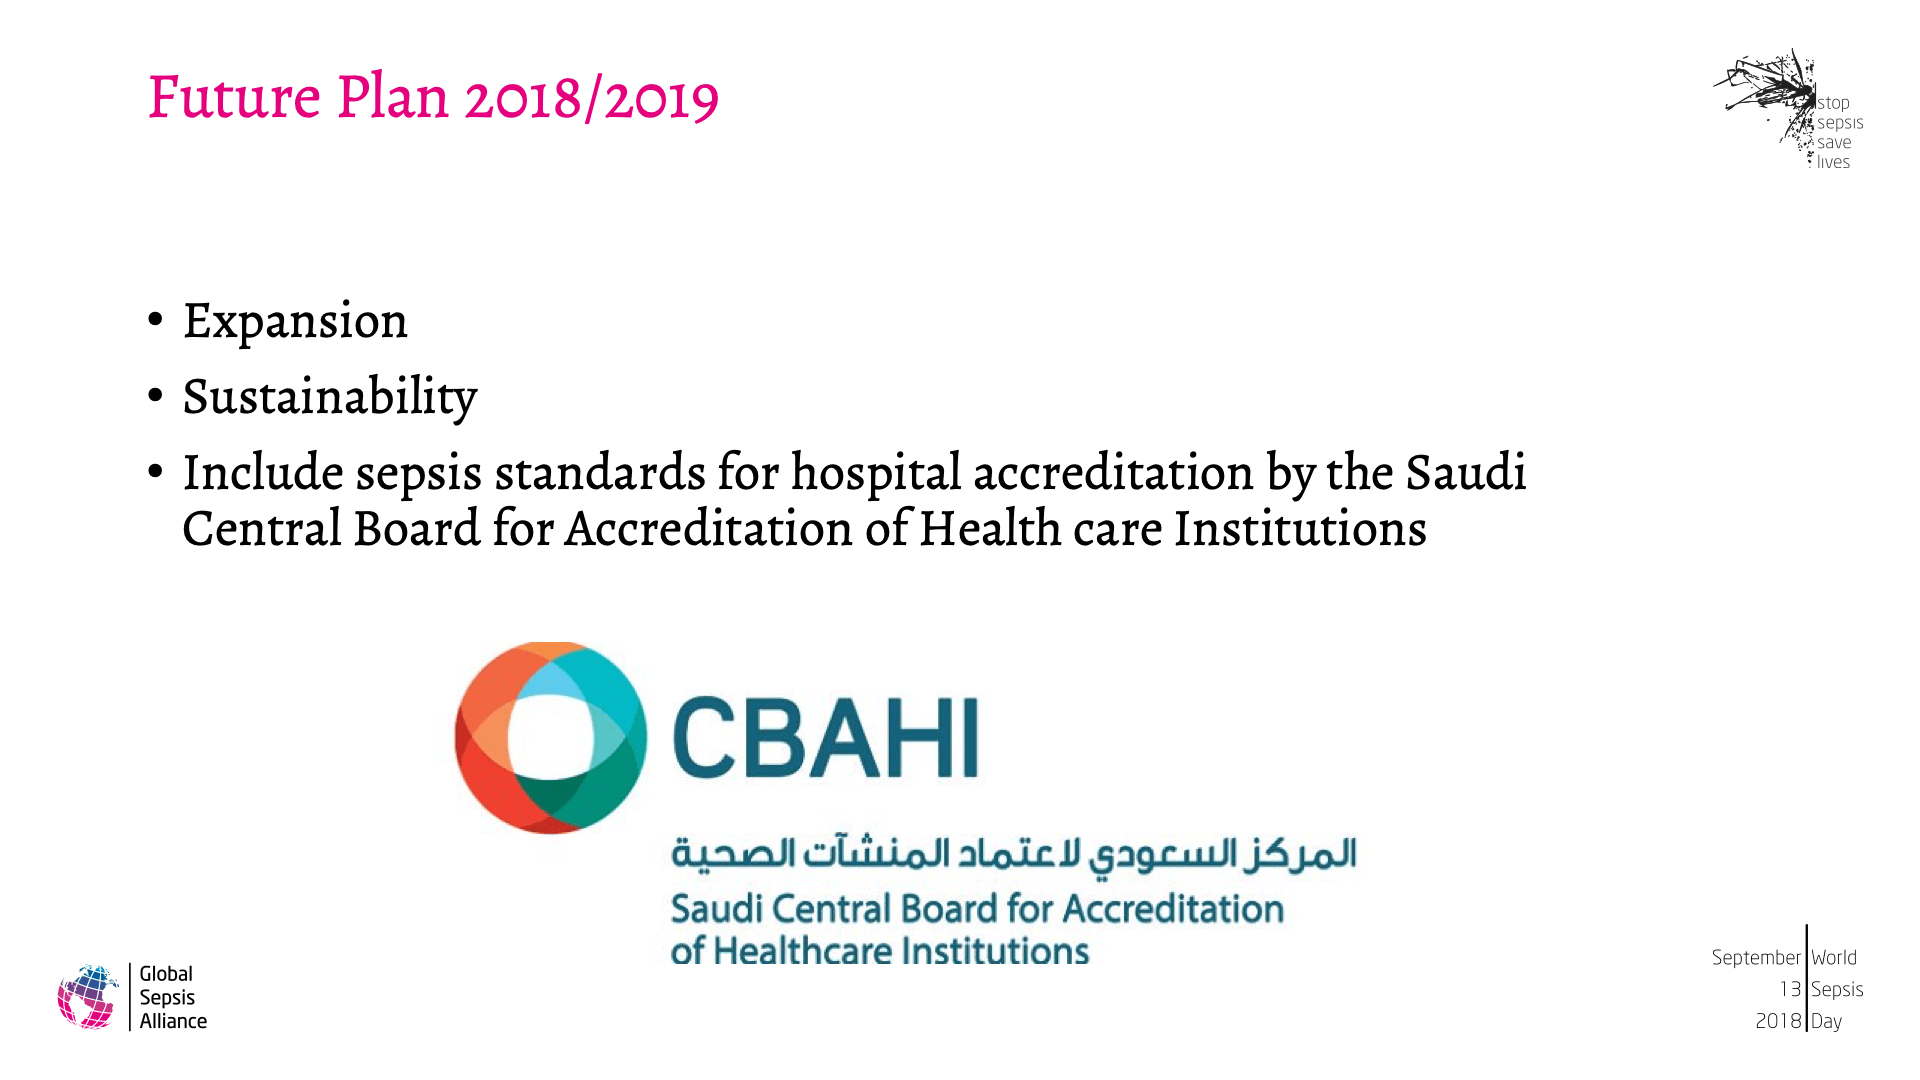 Progress of the National Sepsis Plan in Saudi Arabia10.png